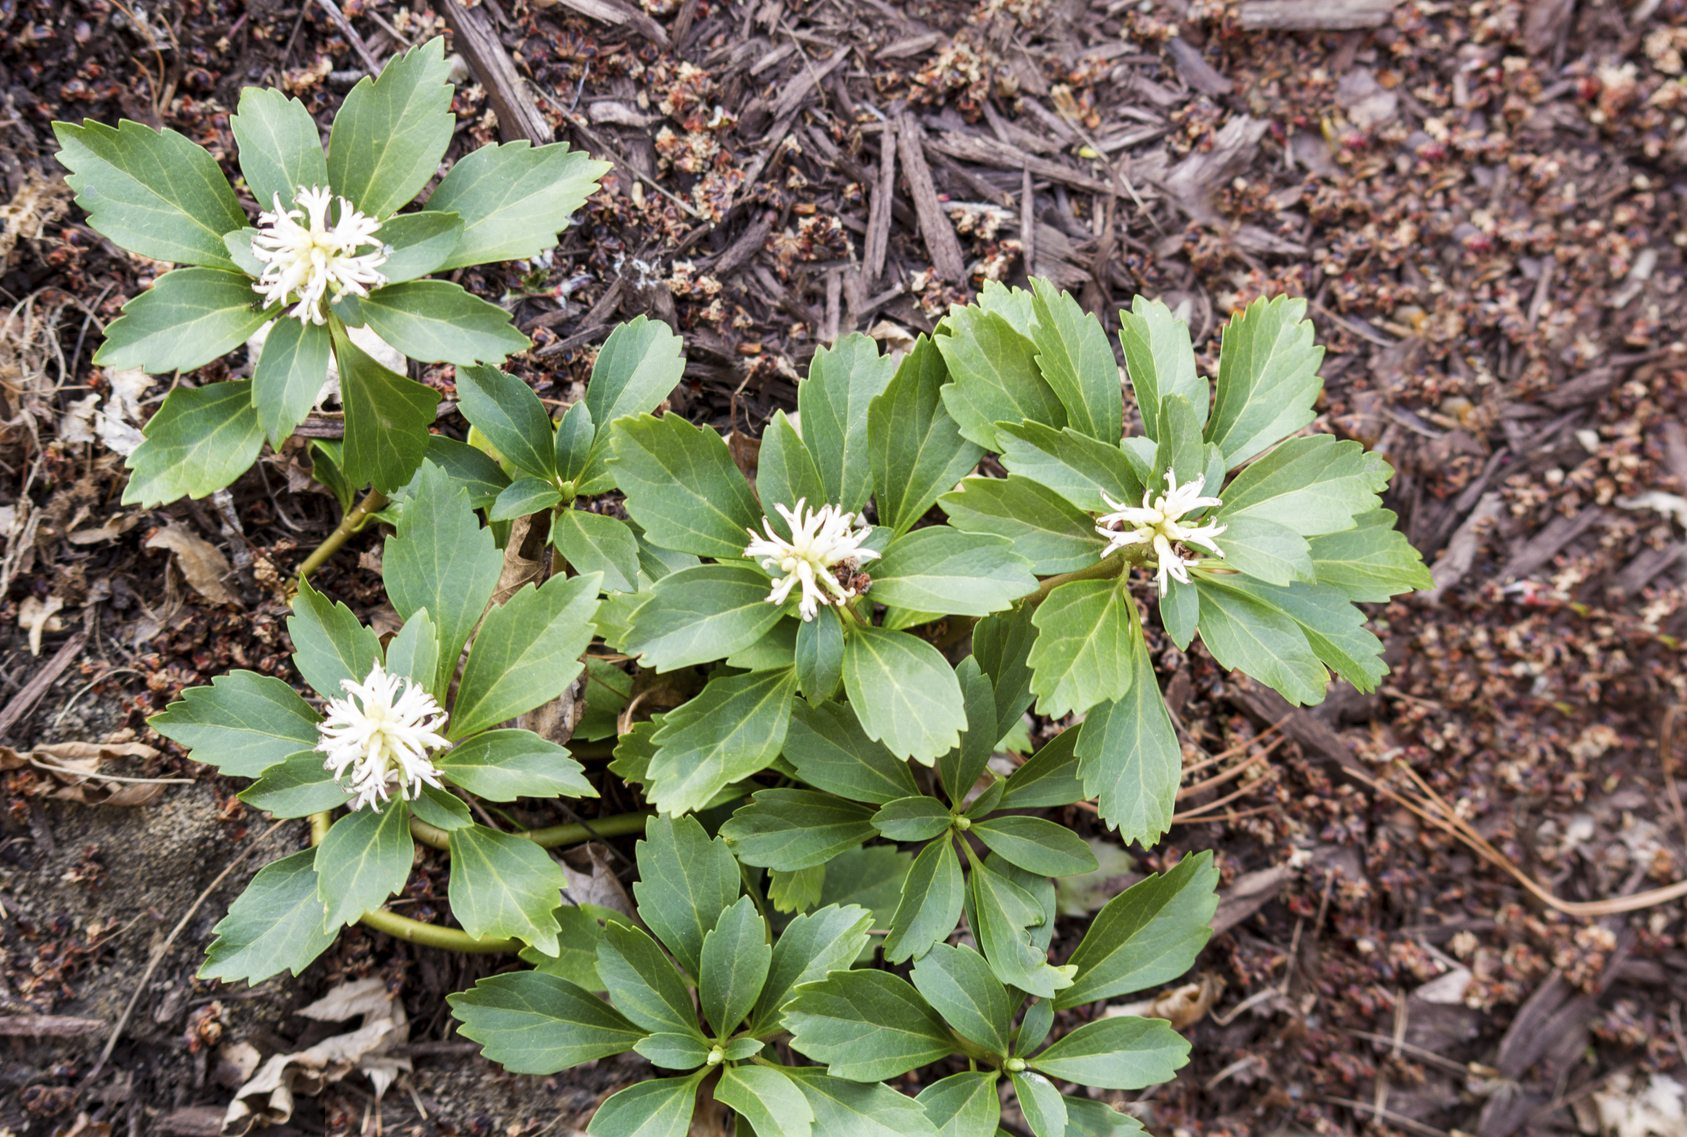 Pachysandra removal tips how to get rid of pachysandra for Ornamental grasses that stay green all year